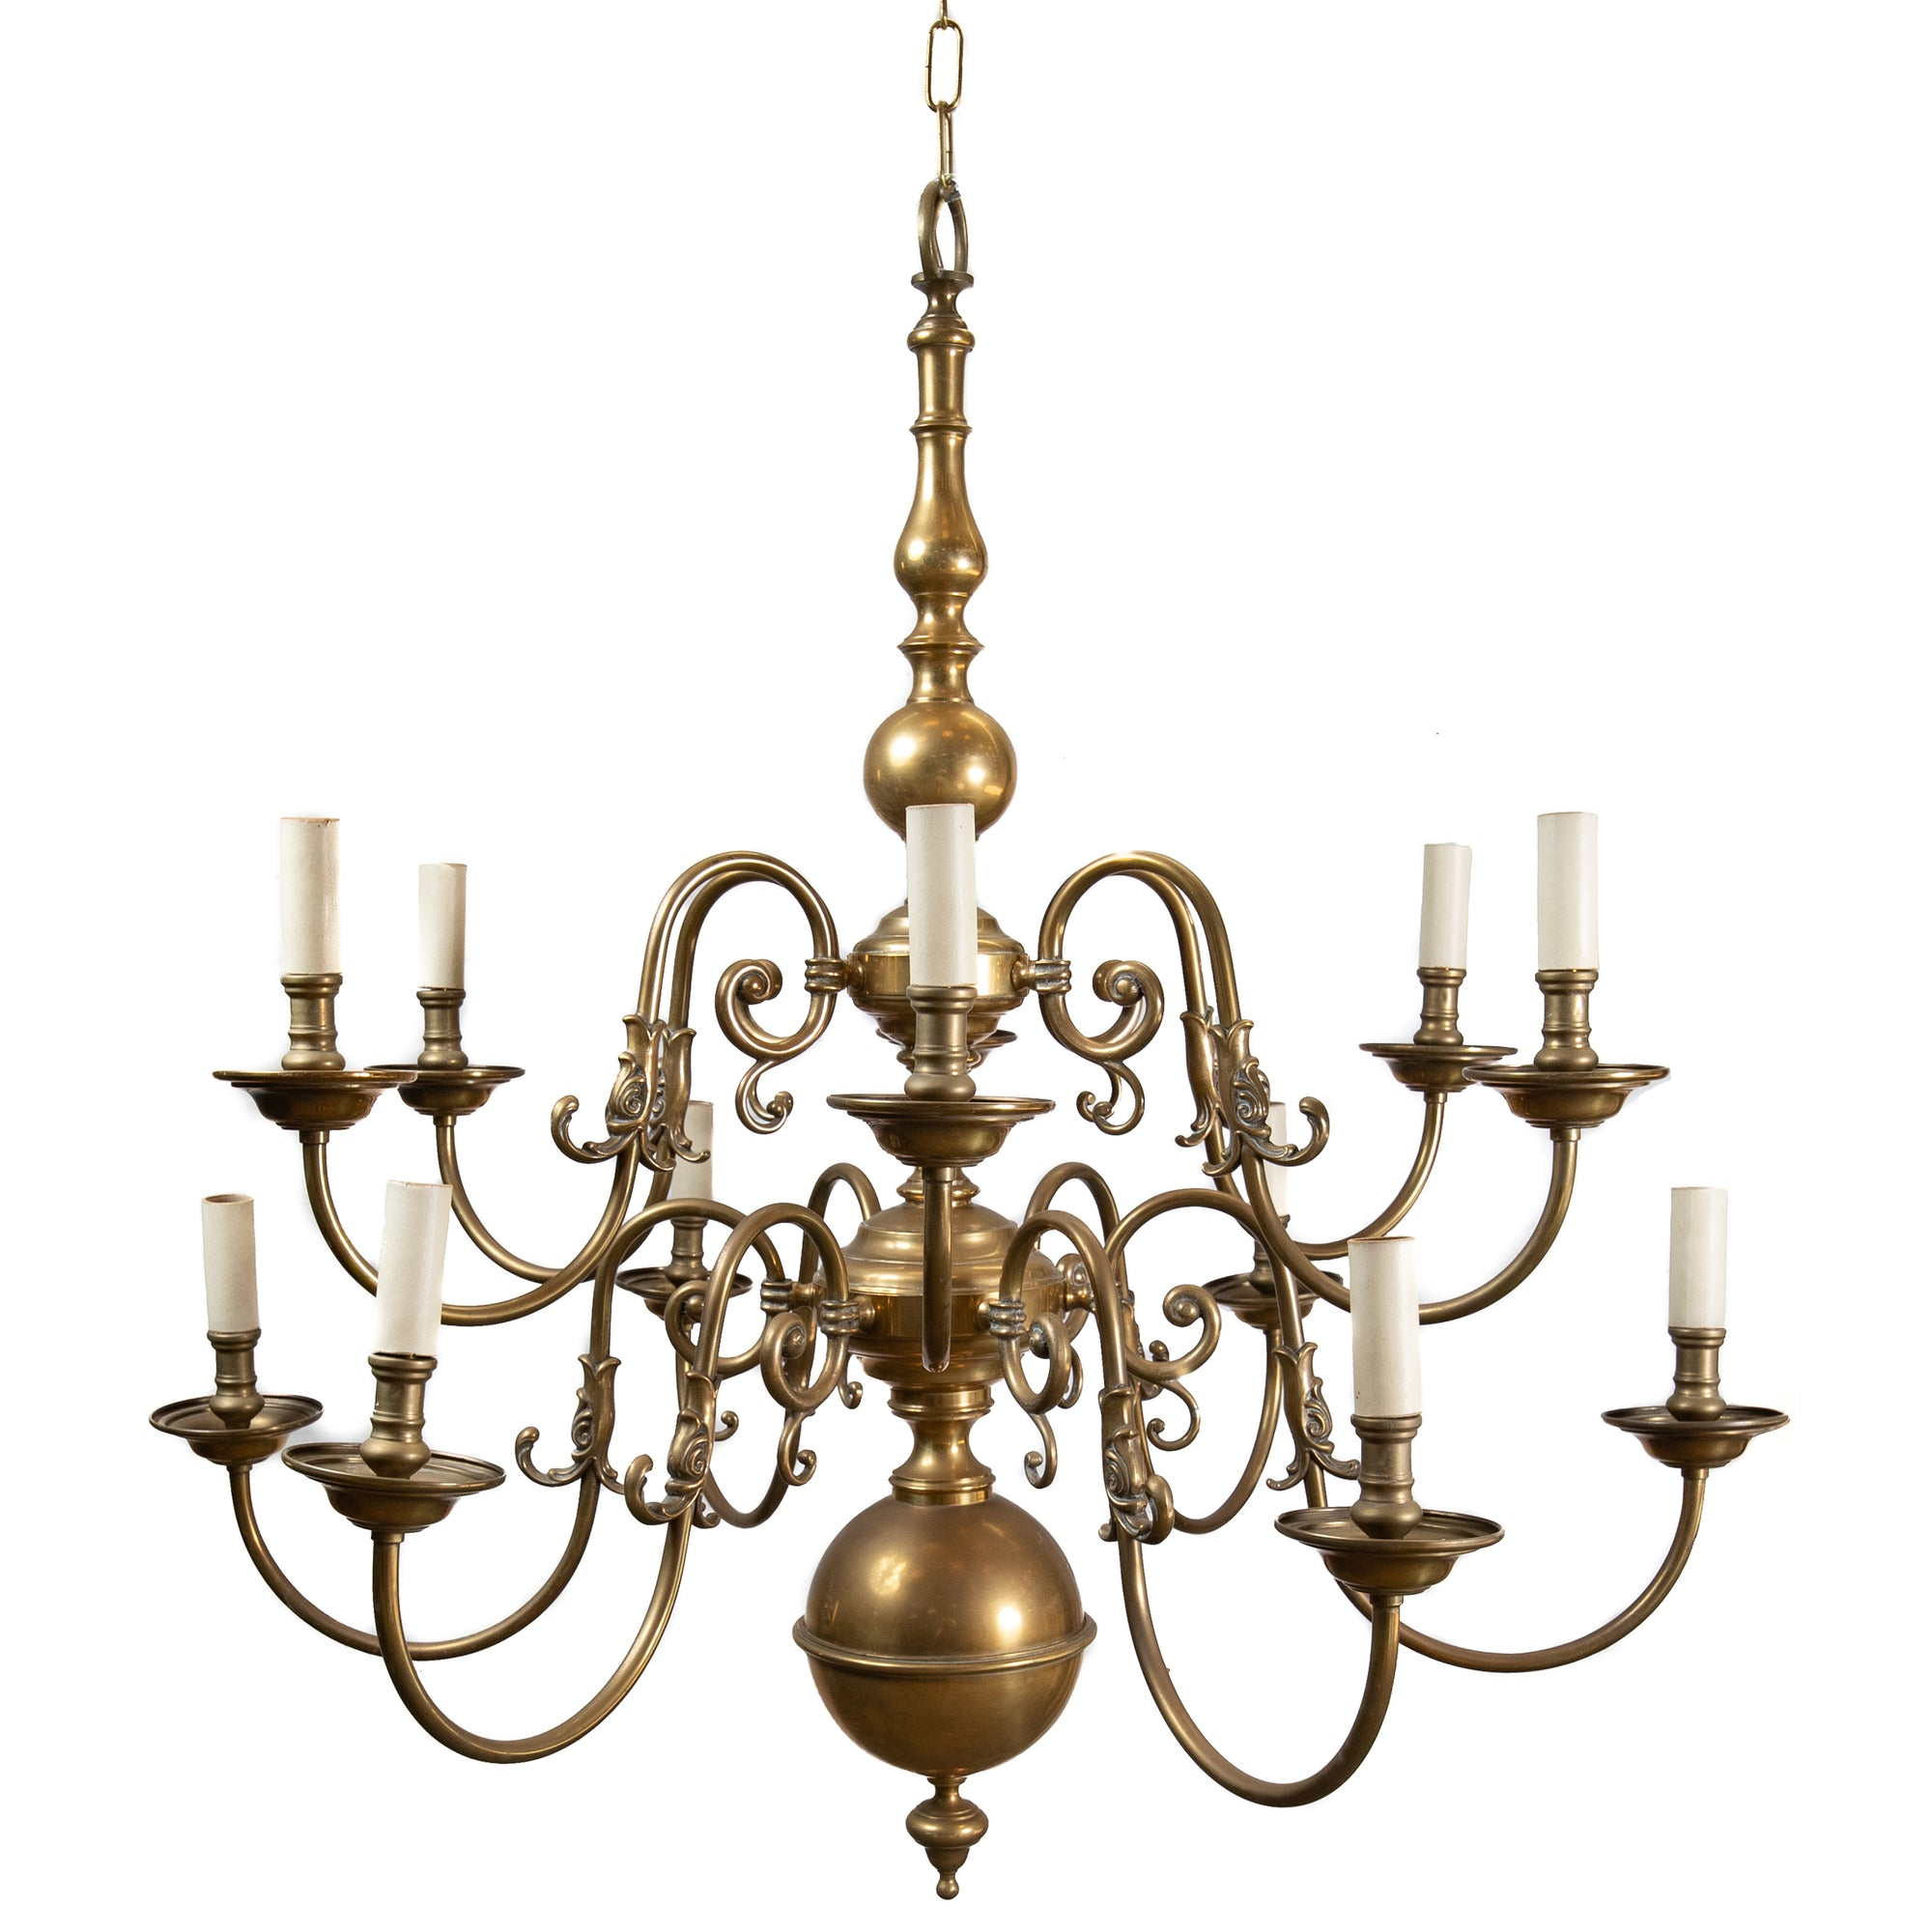 Reclaimed Dutch Style 2 Tier 12 Arm Brass Chandelier